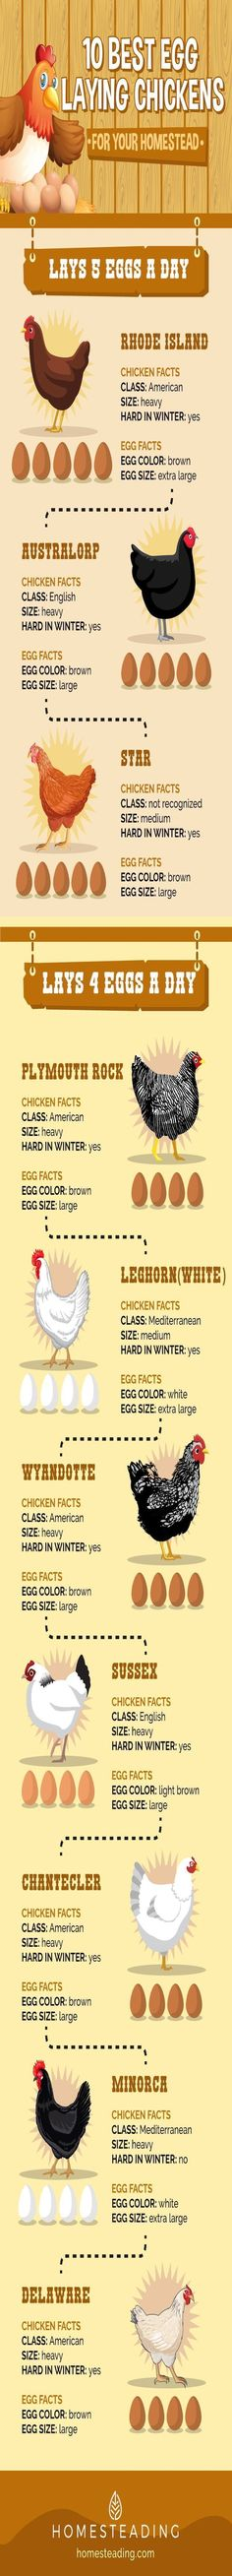 Top 10 Chicken Breeds | The Best Egg Laying Chickens For Your